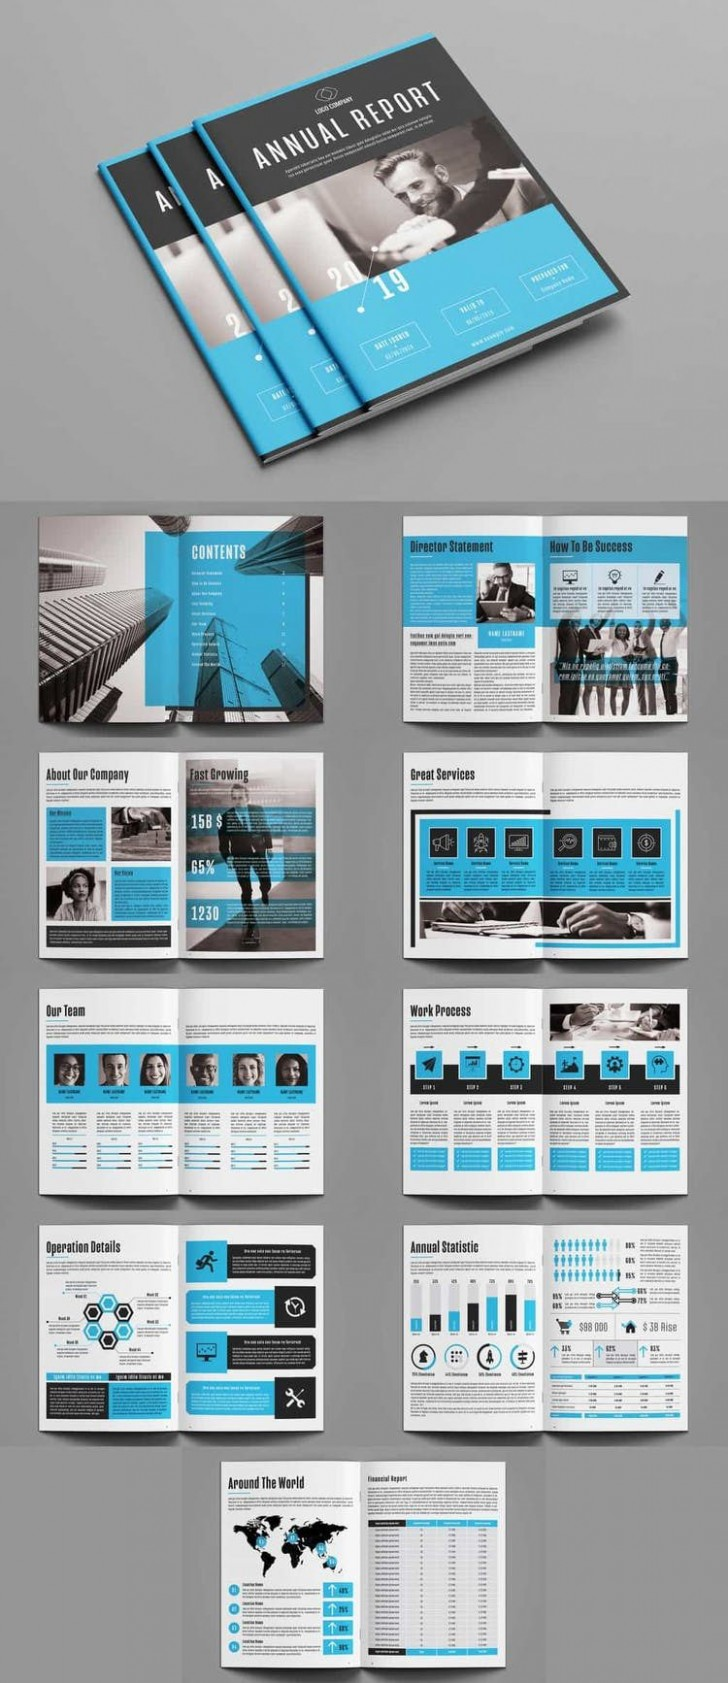 005 Best Annual Report Design Template Indesign Concept  Free Download728